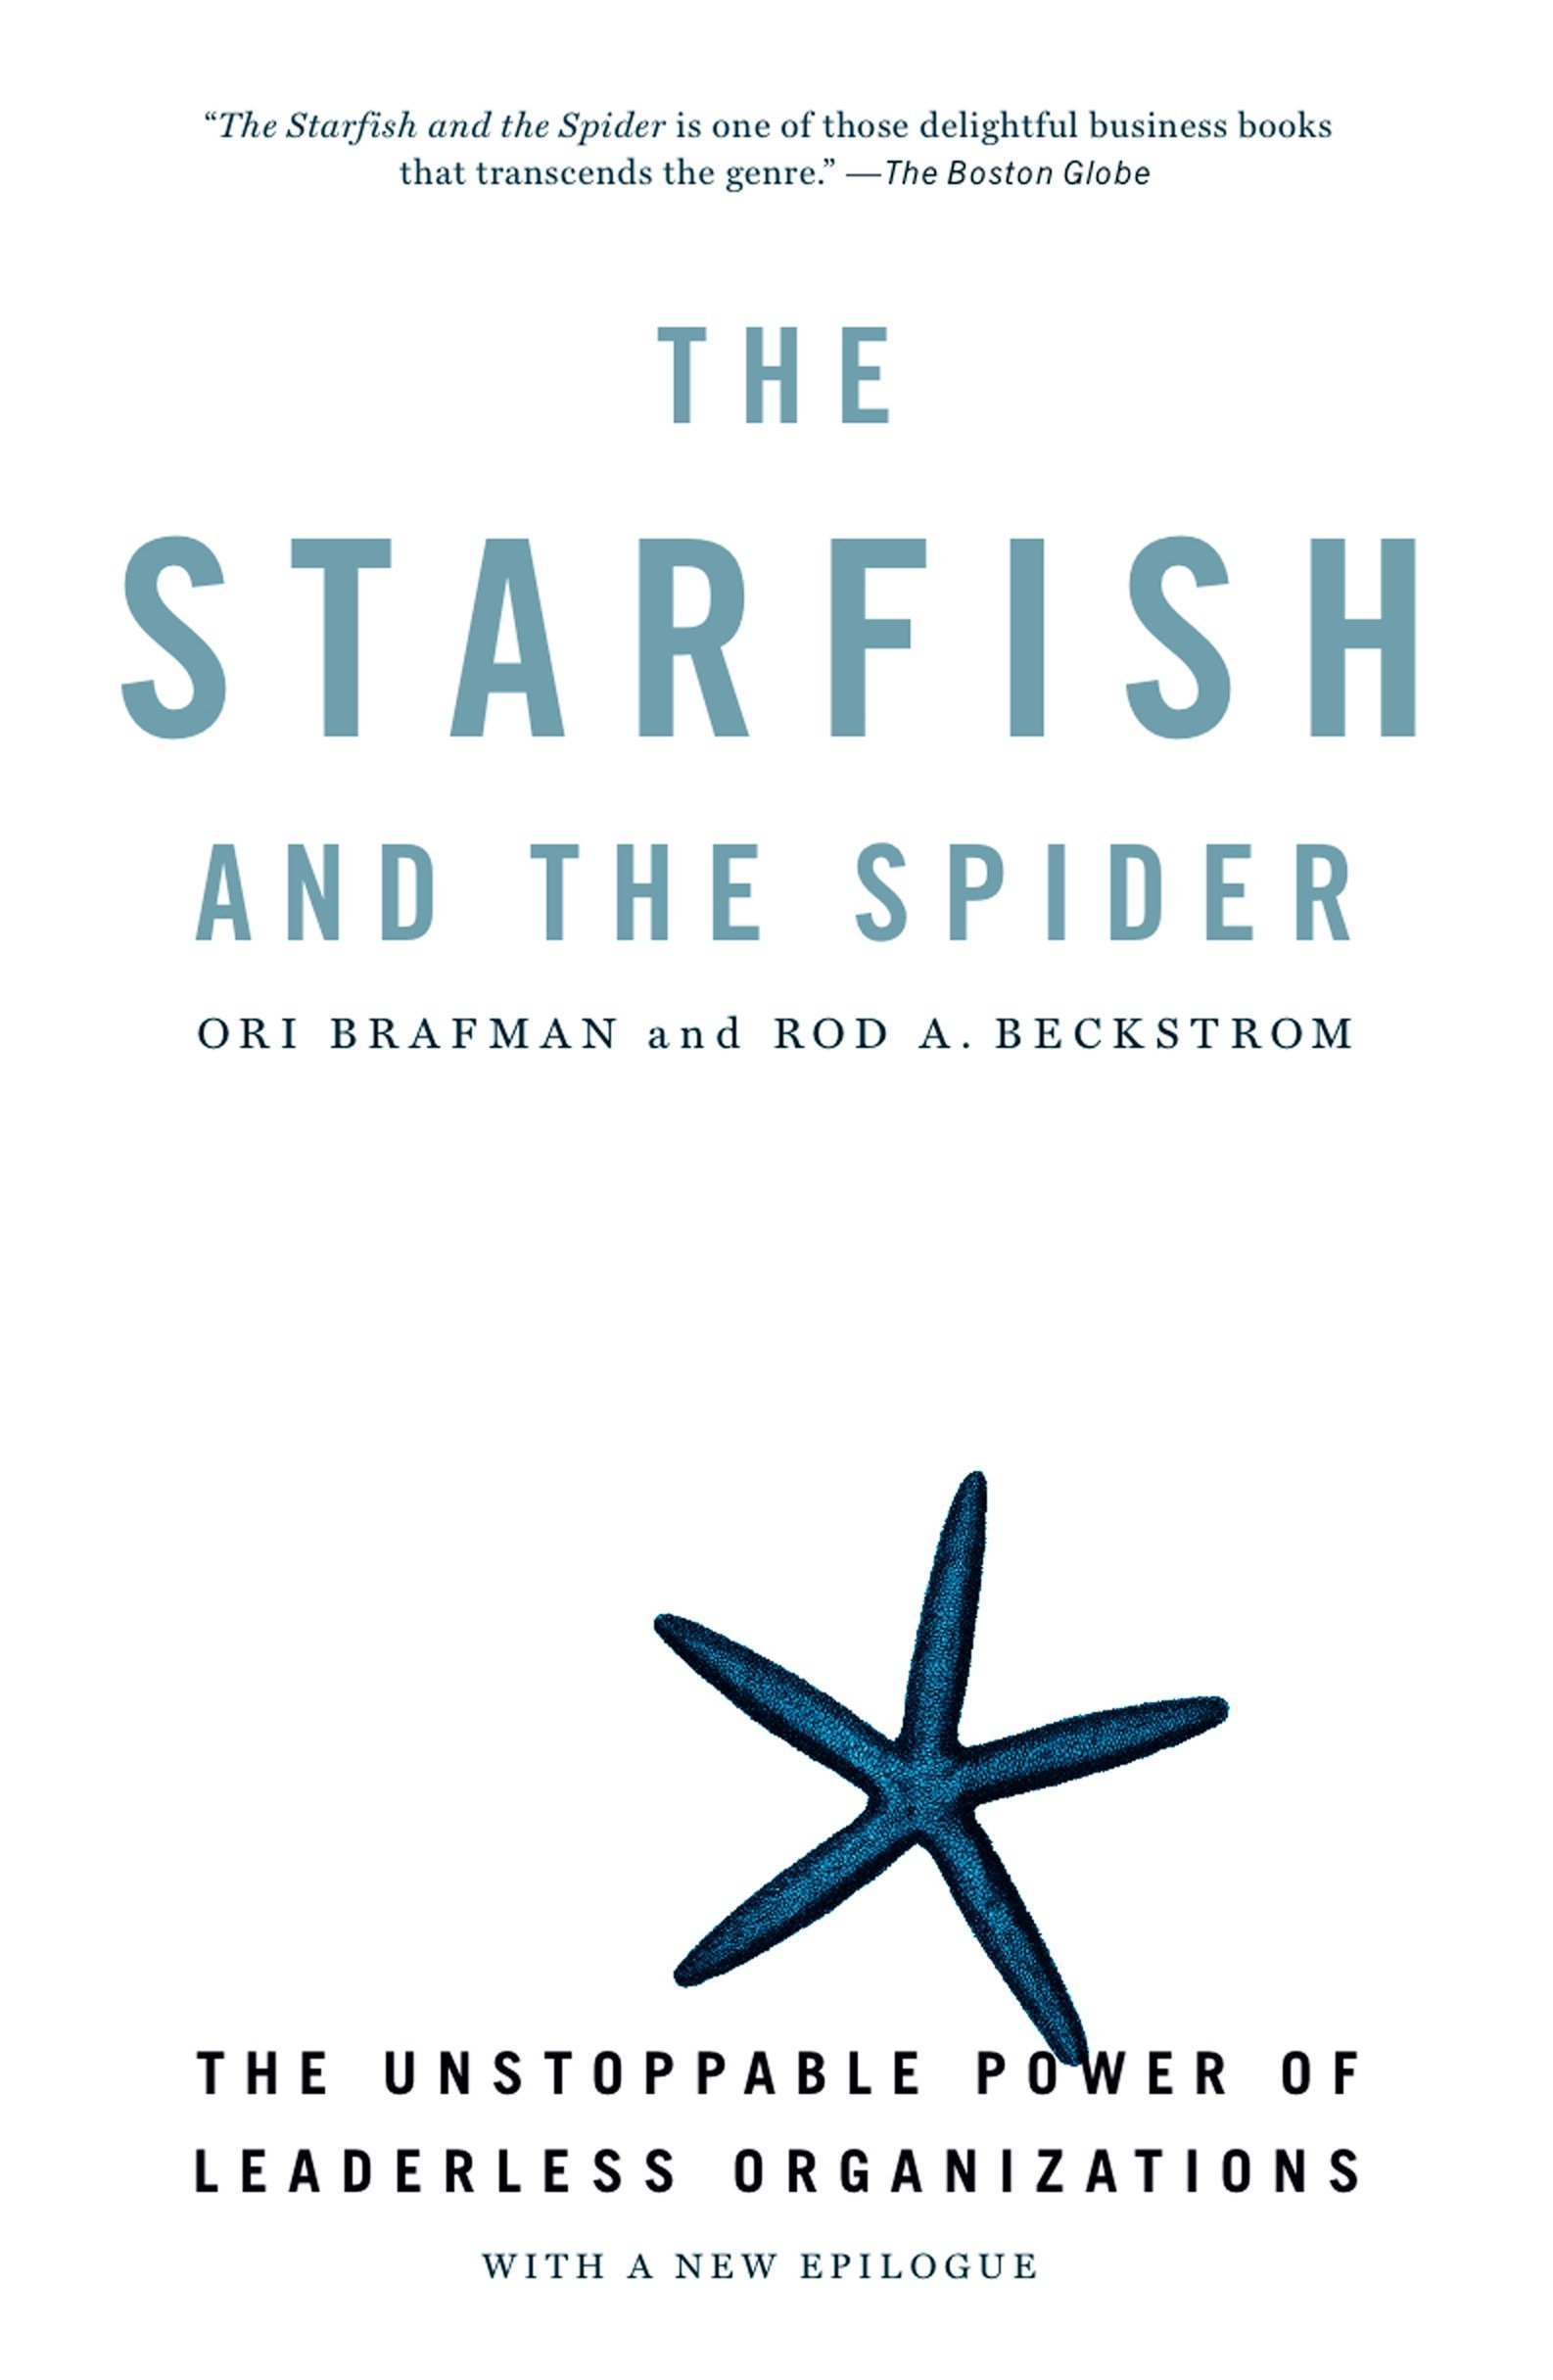 Into The Wild Essay Thesis The Starfish And The Spider The Unstoppable Power Of Leaderless  Organizations Ori Brafman Rod A Beckstrom  Amazoncom  Books Thesis Statement For Education Essay also Essay Paper Checker The Starfish And The Spider The Unstoppable Power Of Leaderless  English Literature Essay Structure